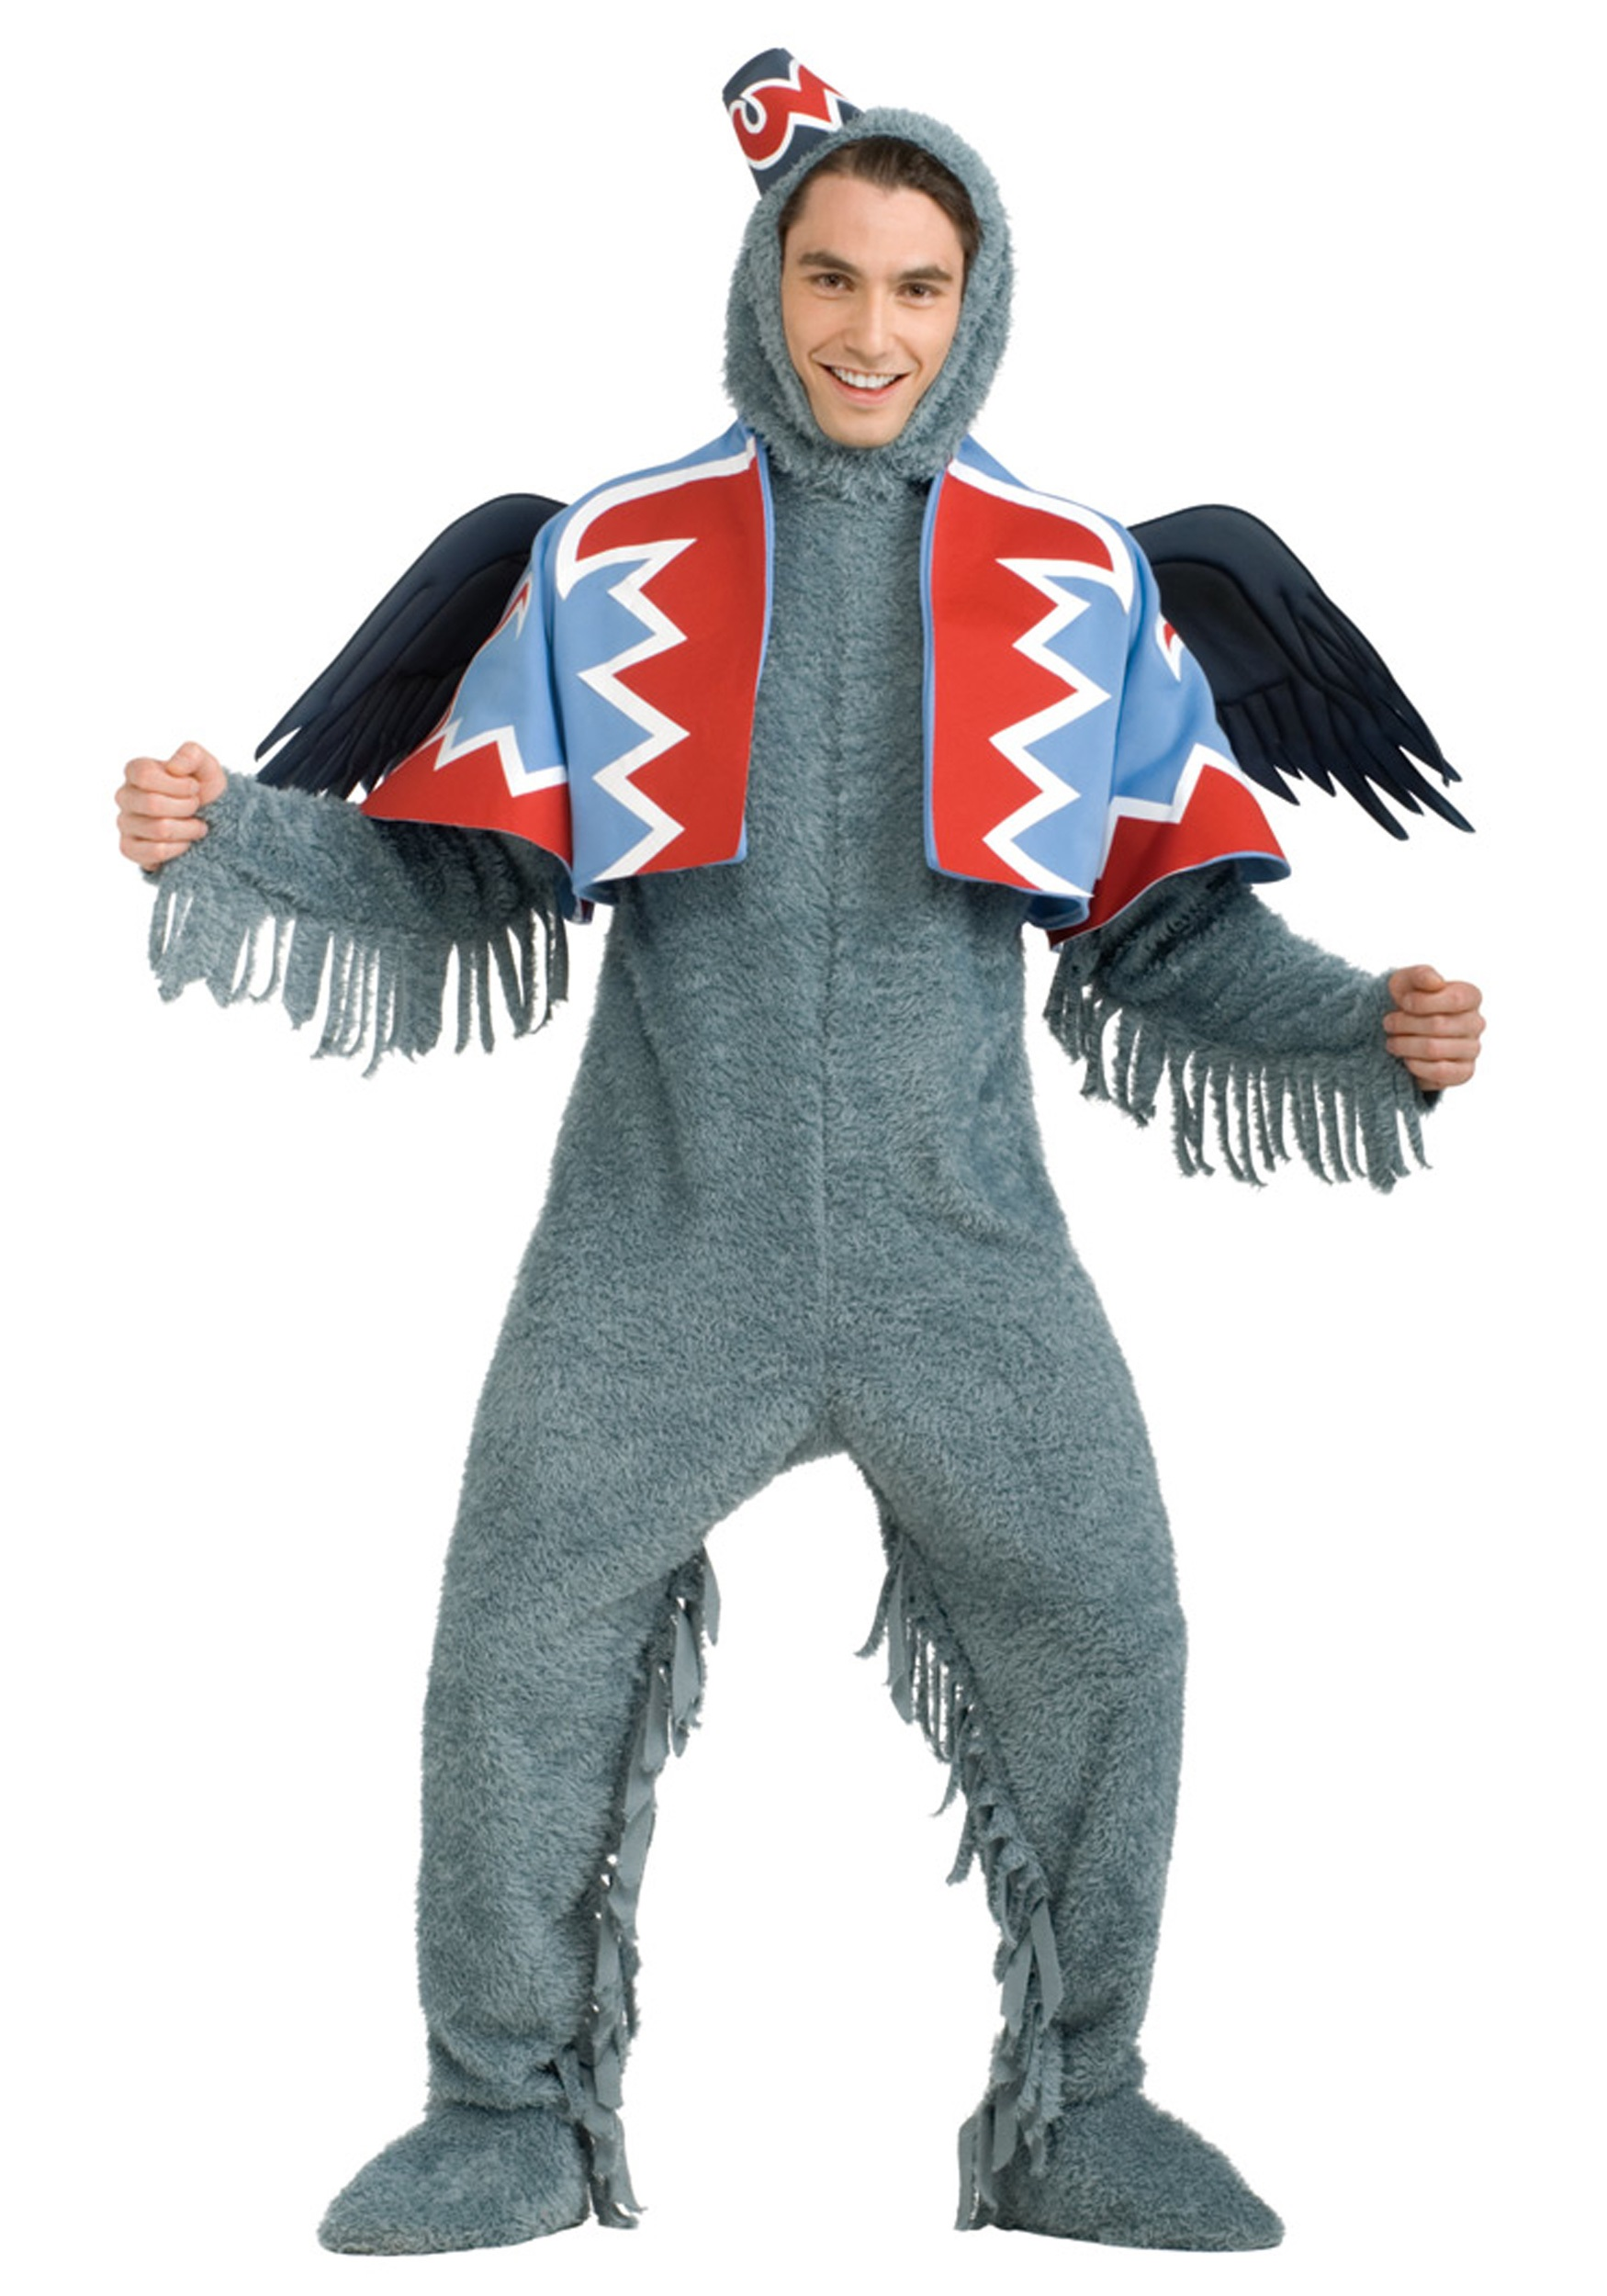 Monkey costumes for halloween halloweencostumes flying monkey costume solutioingenieria Choice Image